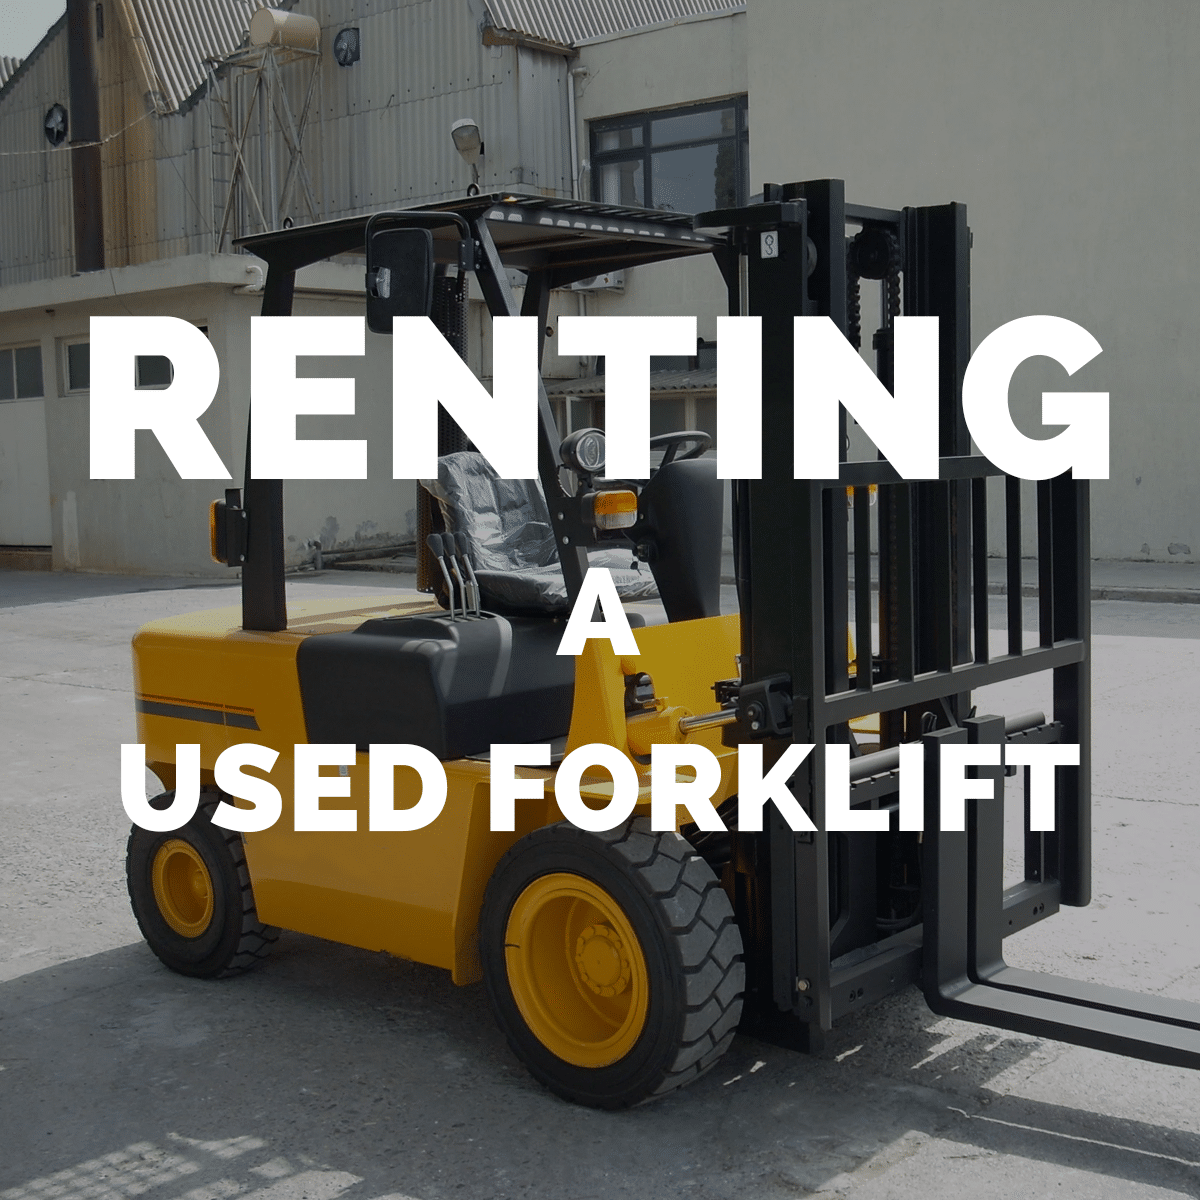 Renting Used forklifts